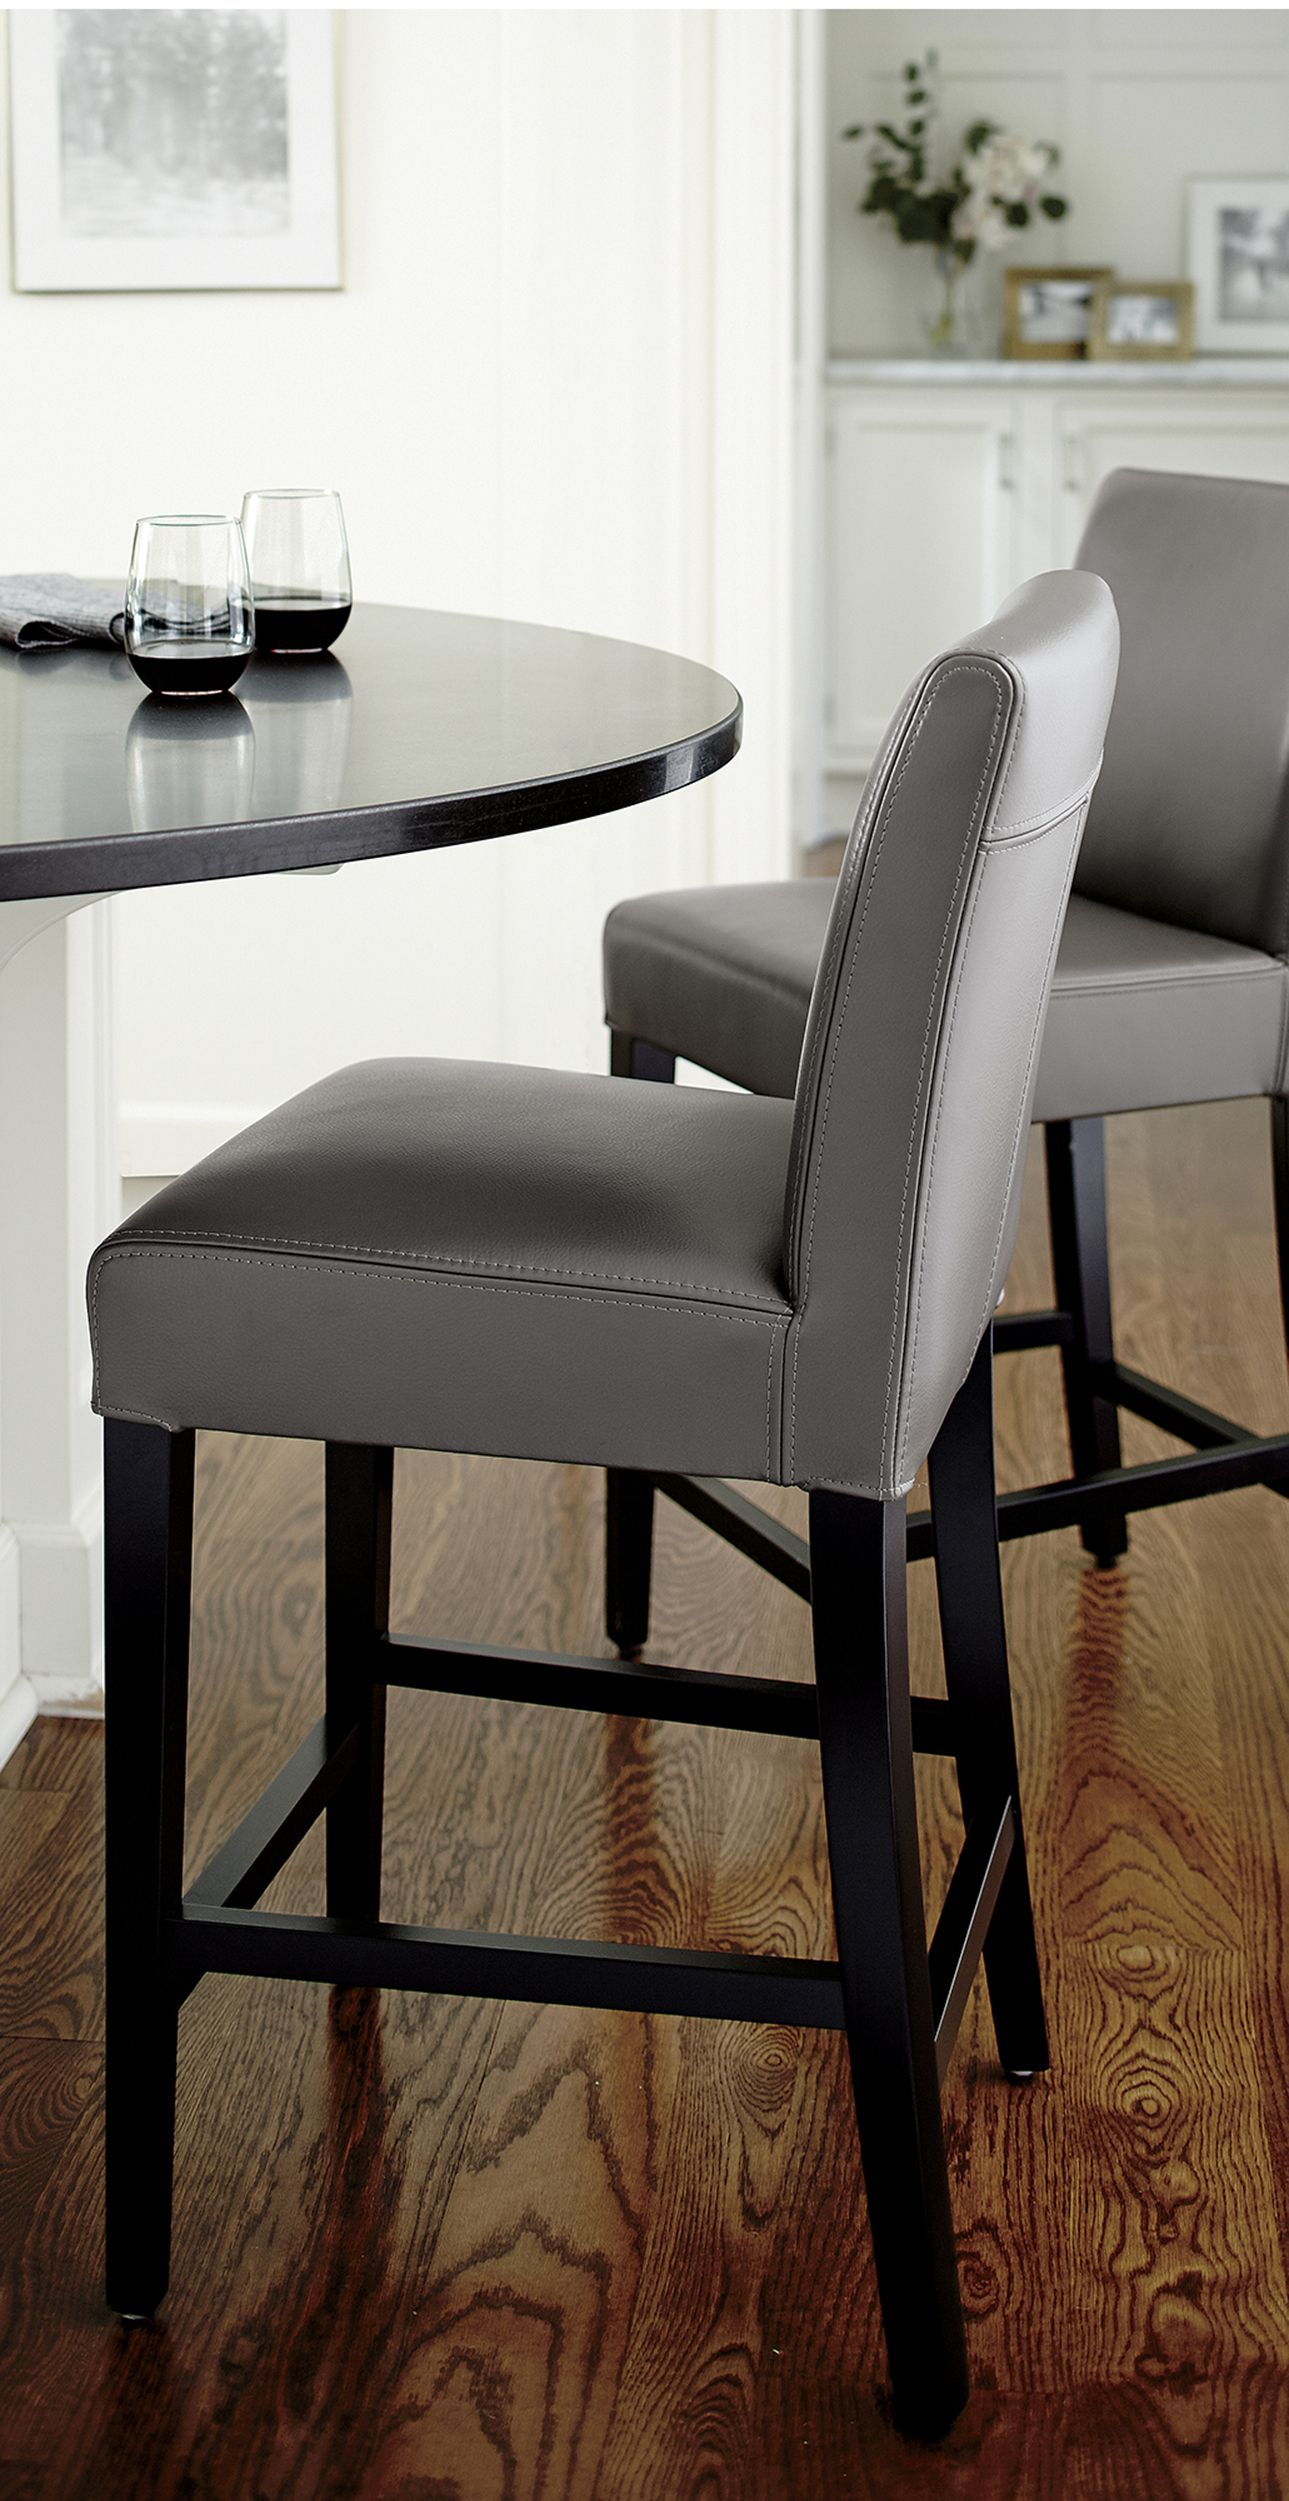 Lowe Smoke Leather Bar Stools Crate And Barrel Leather